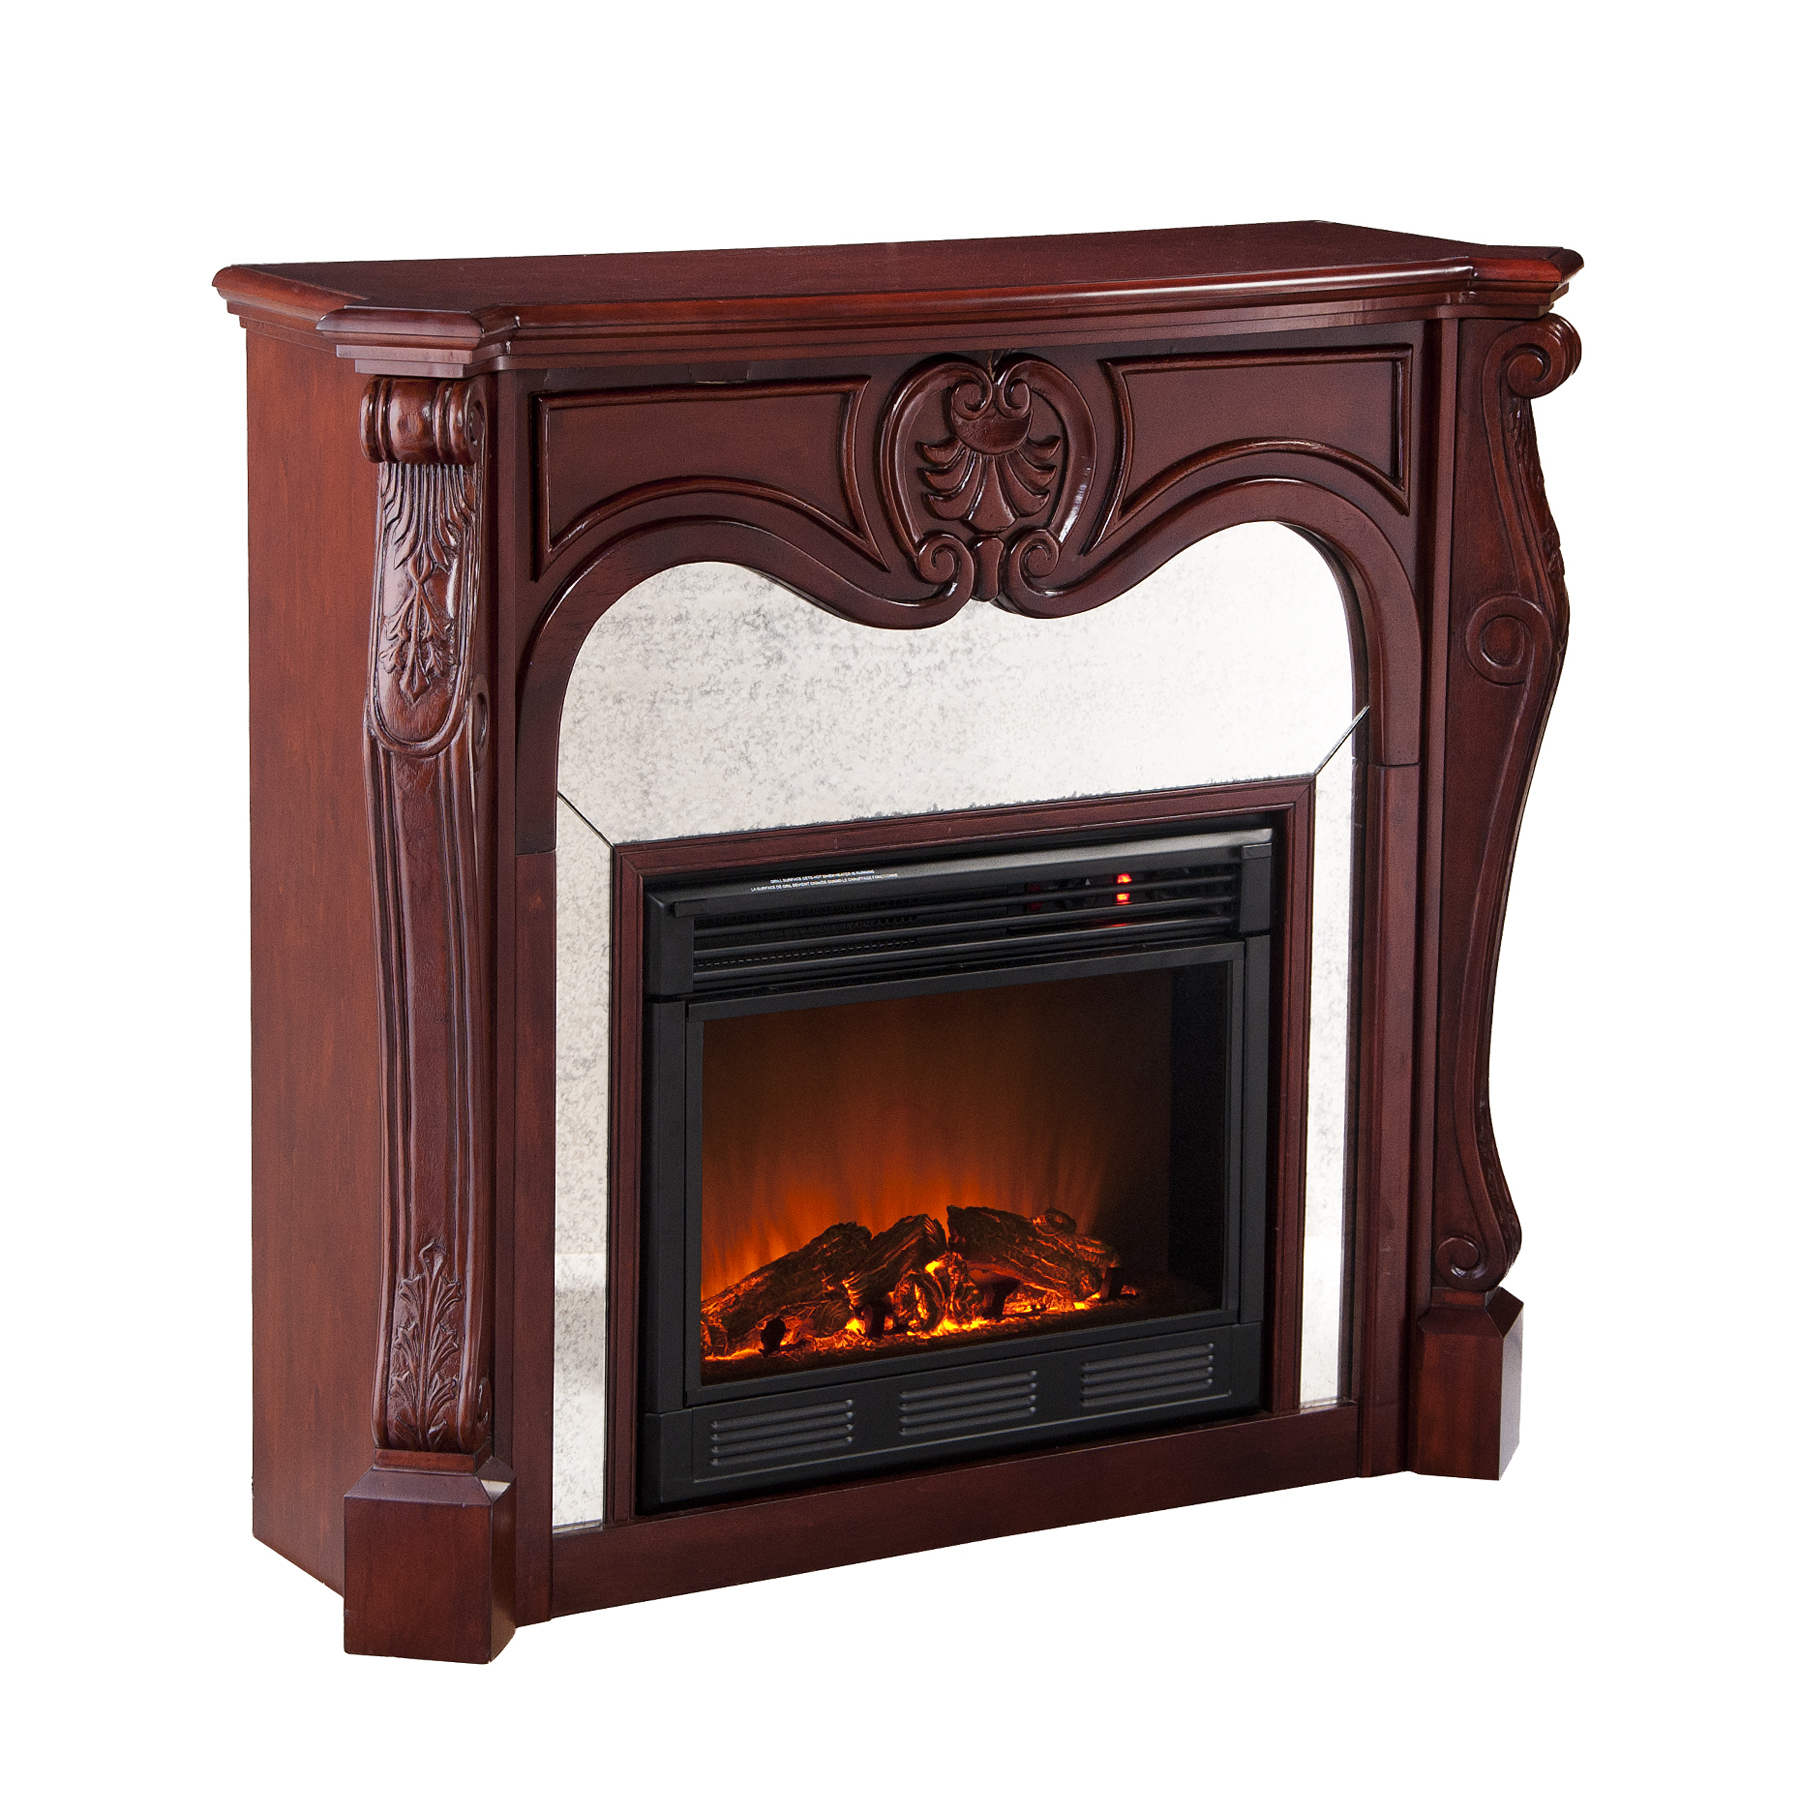 holly u0026 martin burbank electric fireplace cherry holly u0026 martin